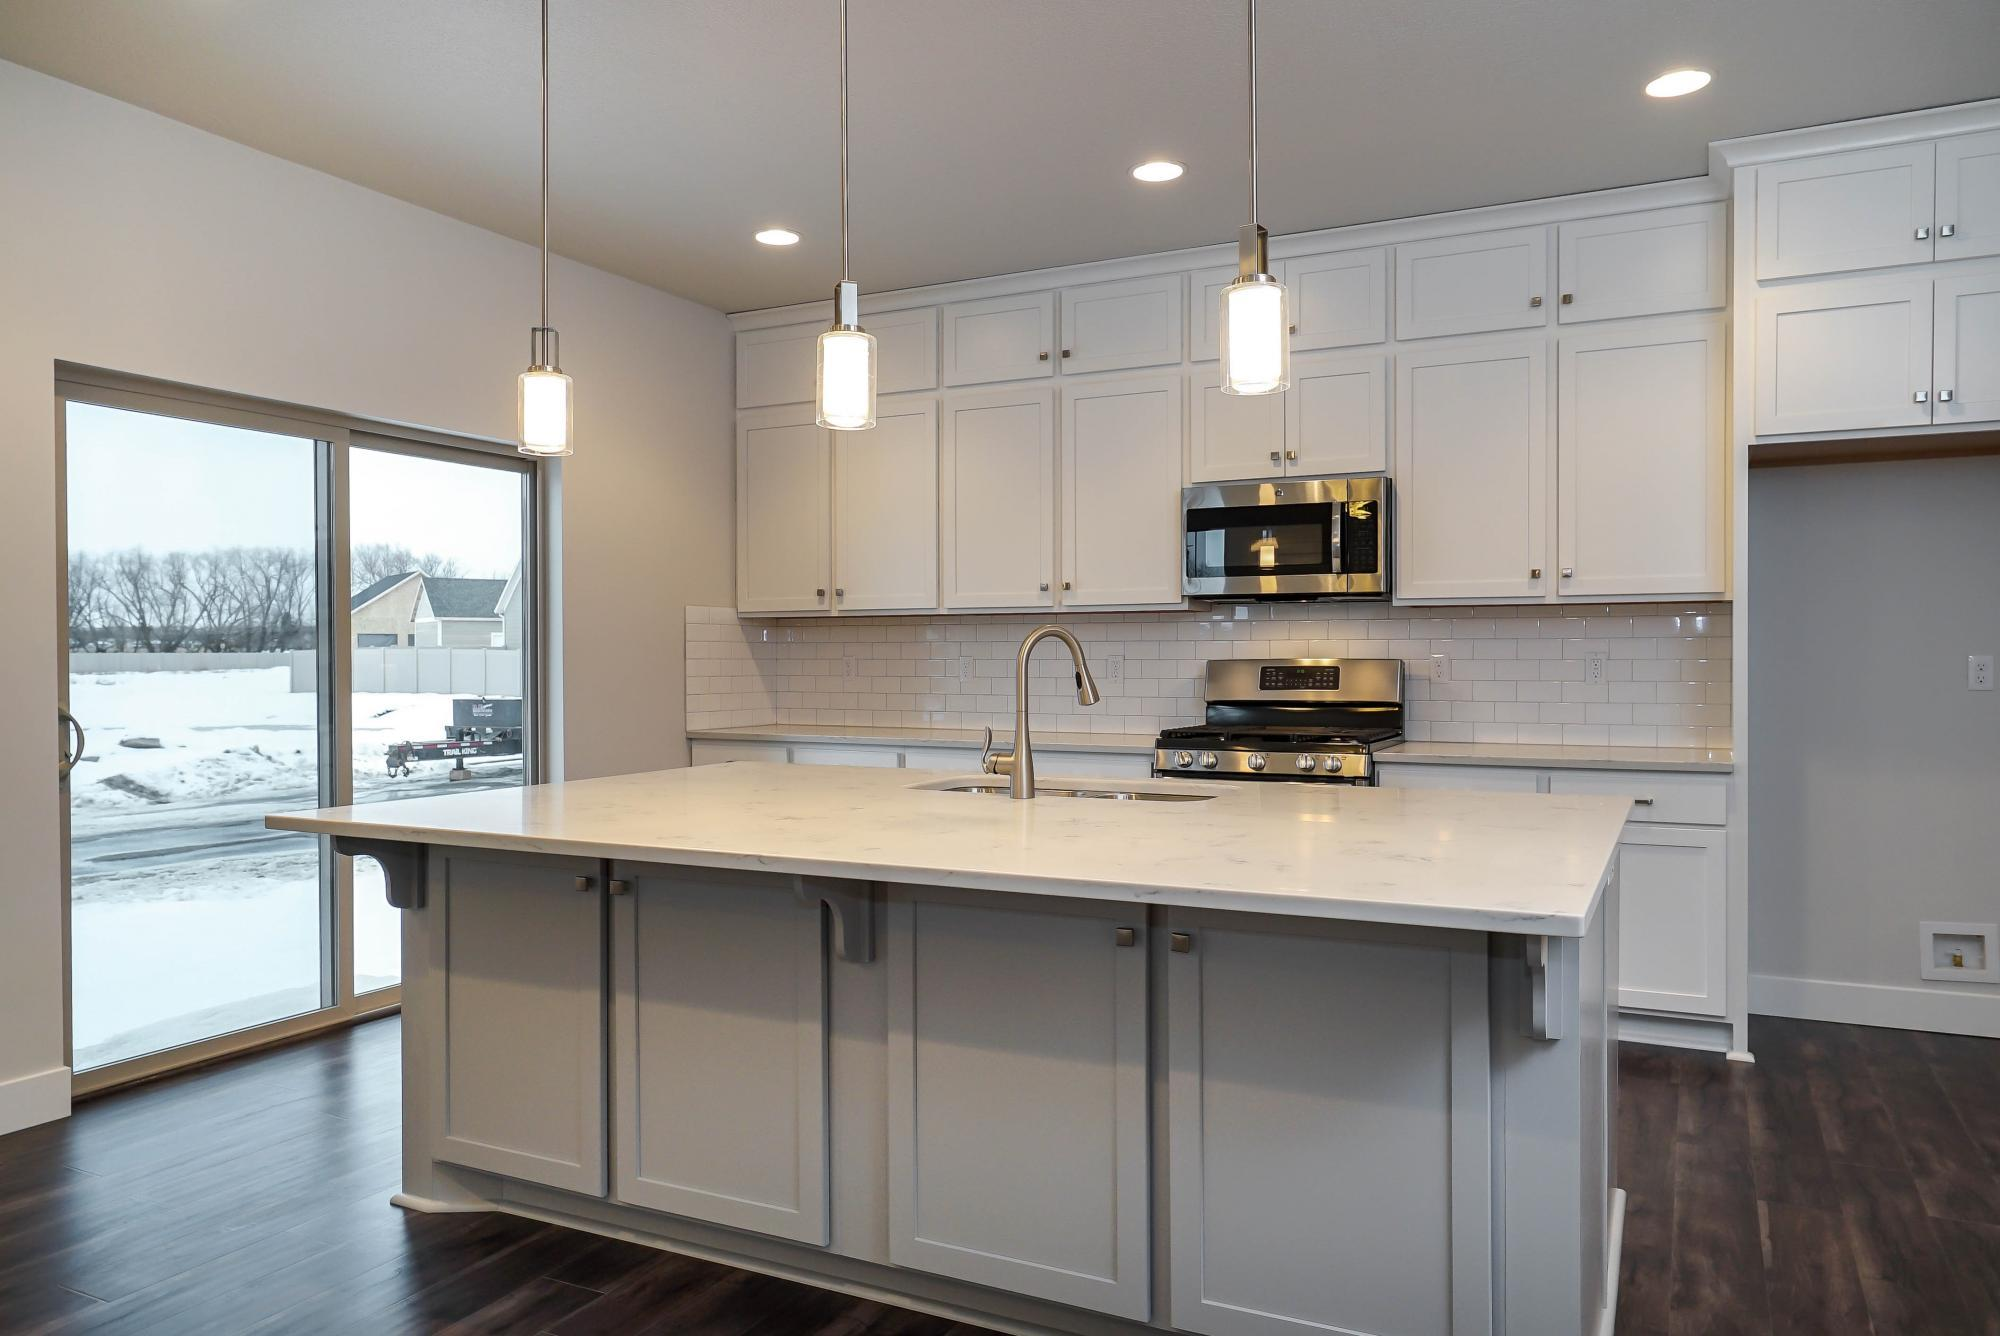 Kitchen featured in the Covington By Destination Homes in Salt Lake City-Ogden, UT